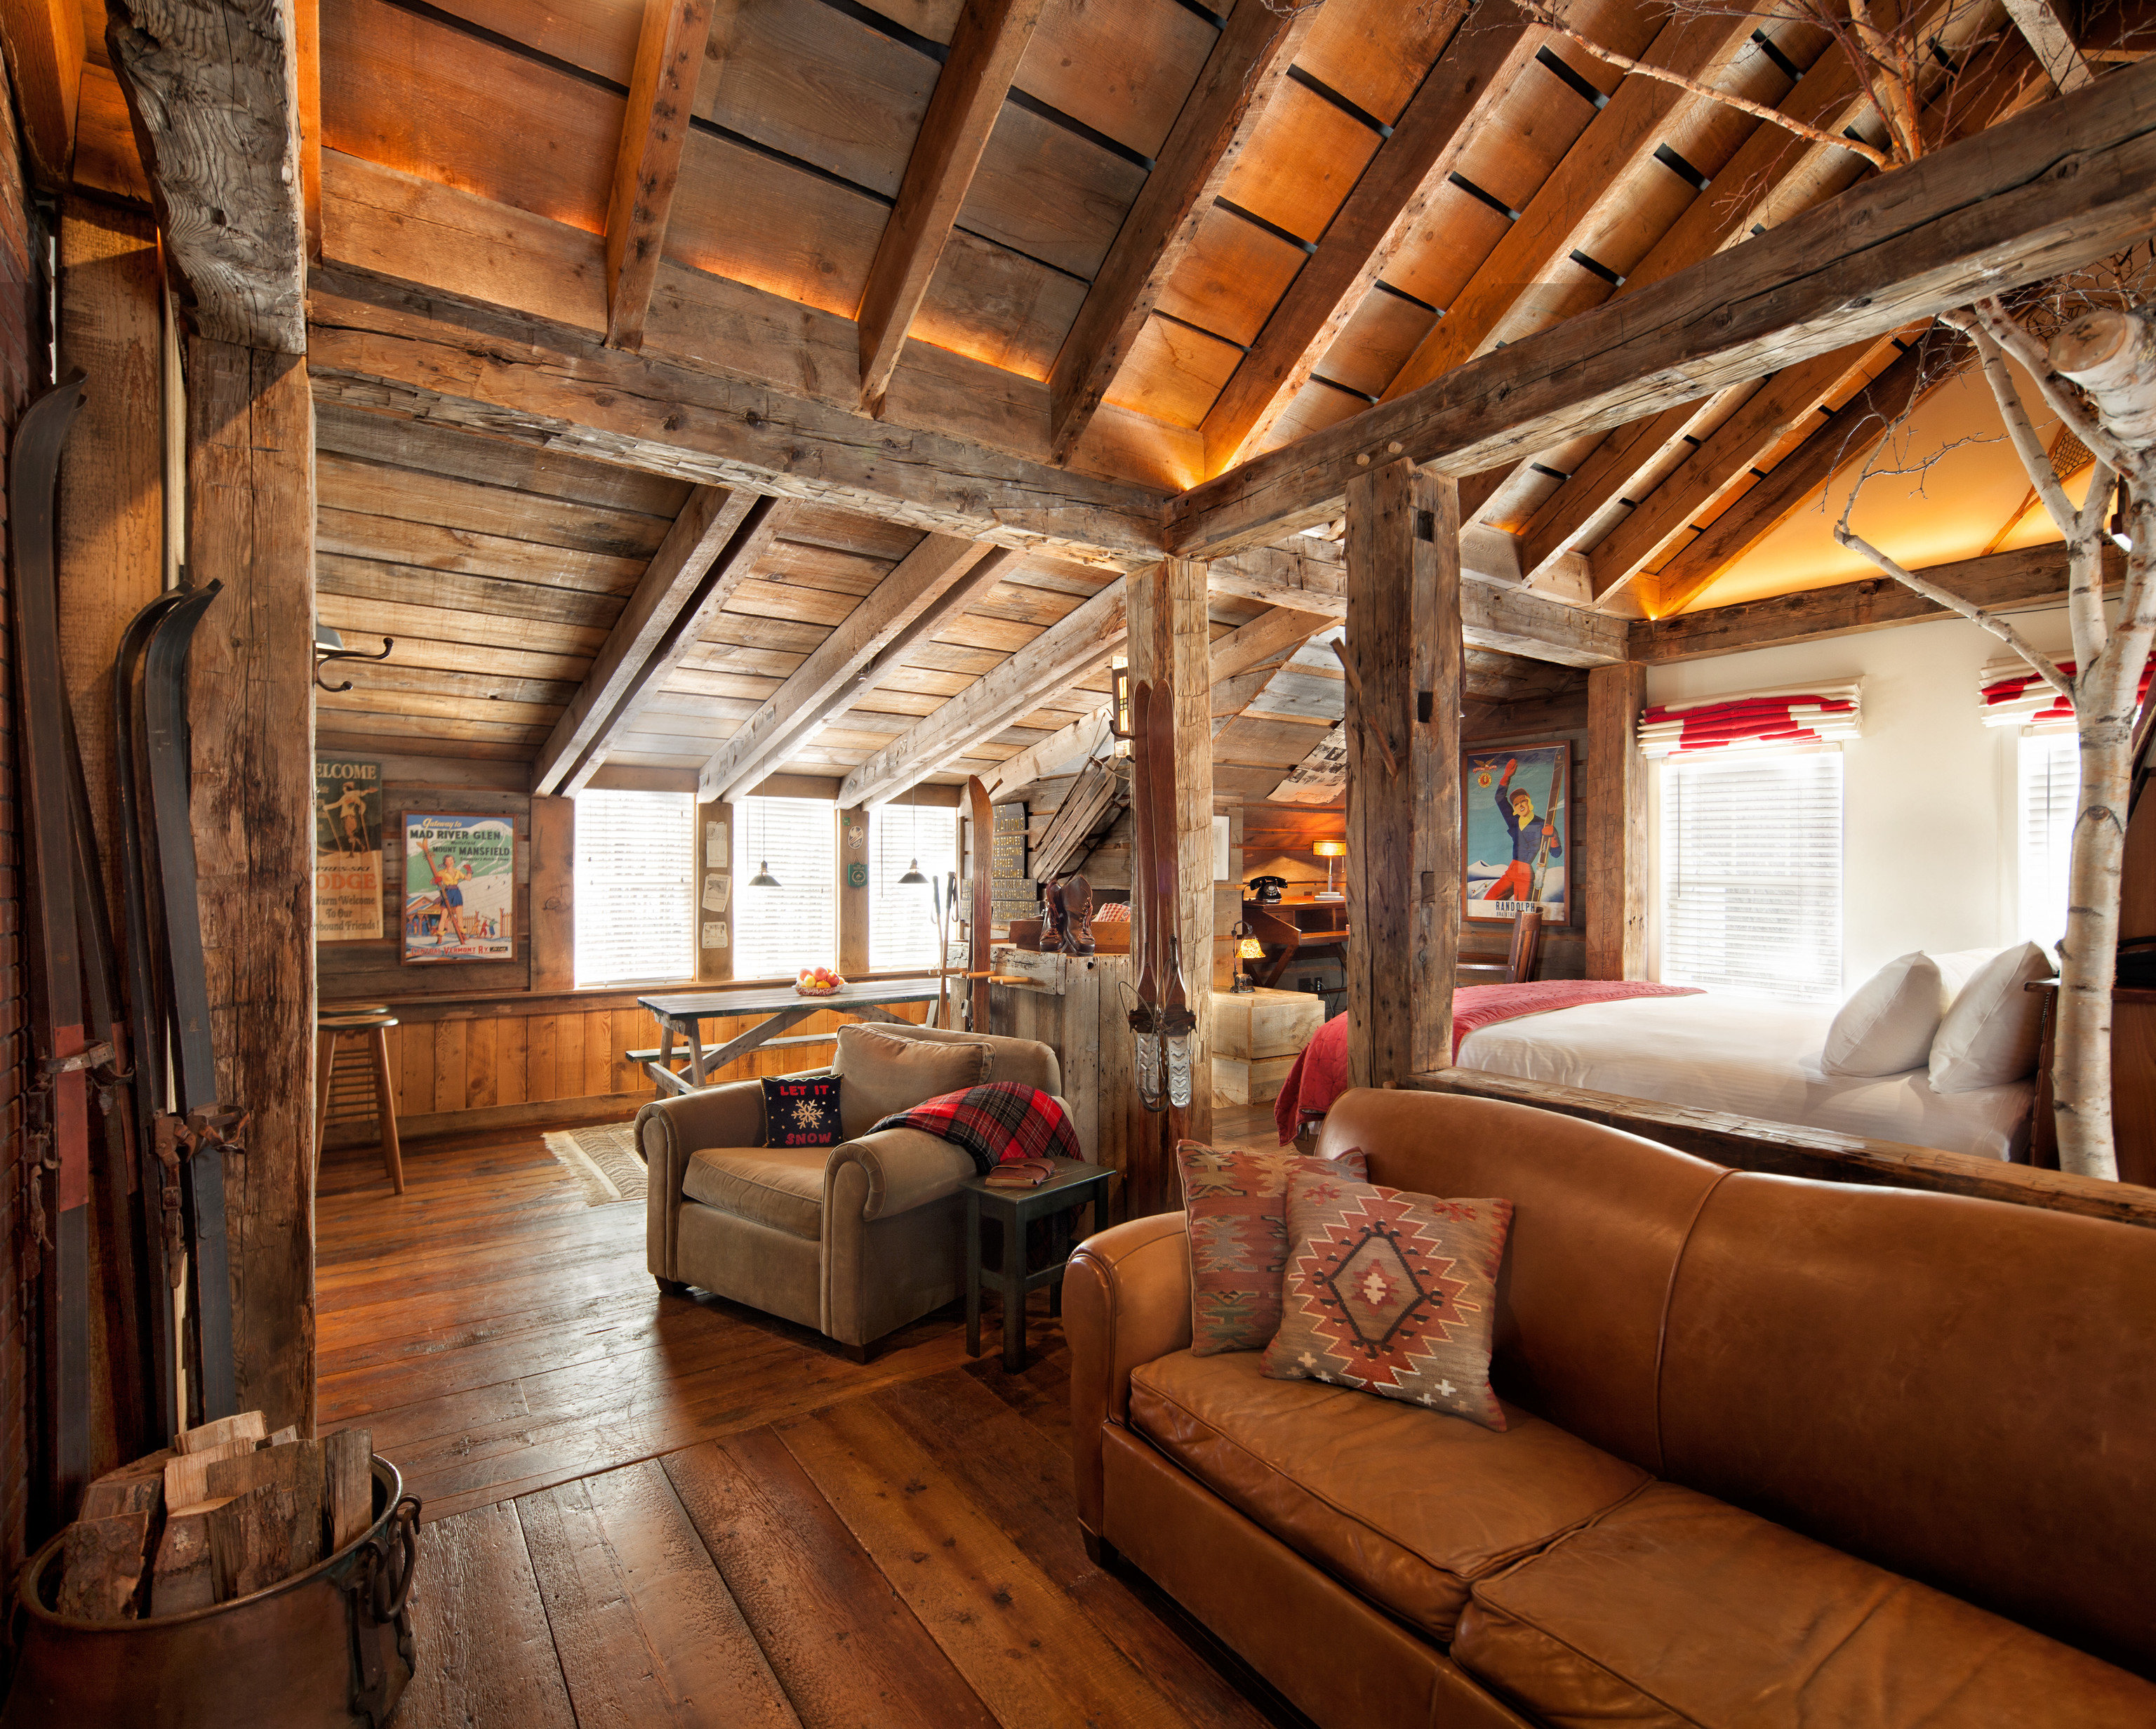 Hotels Romance property log cabin house home living room cottage farmhouse attic